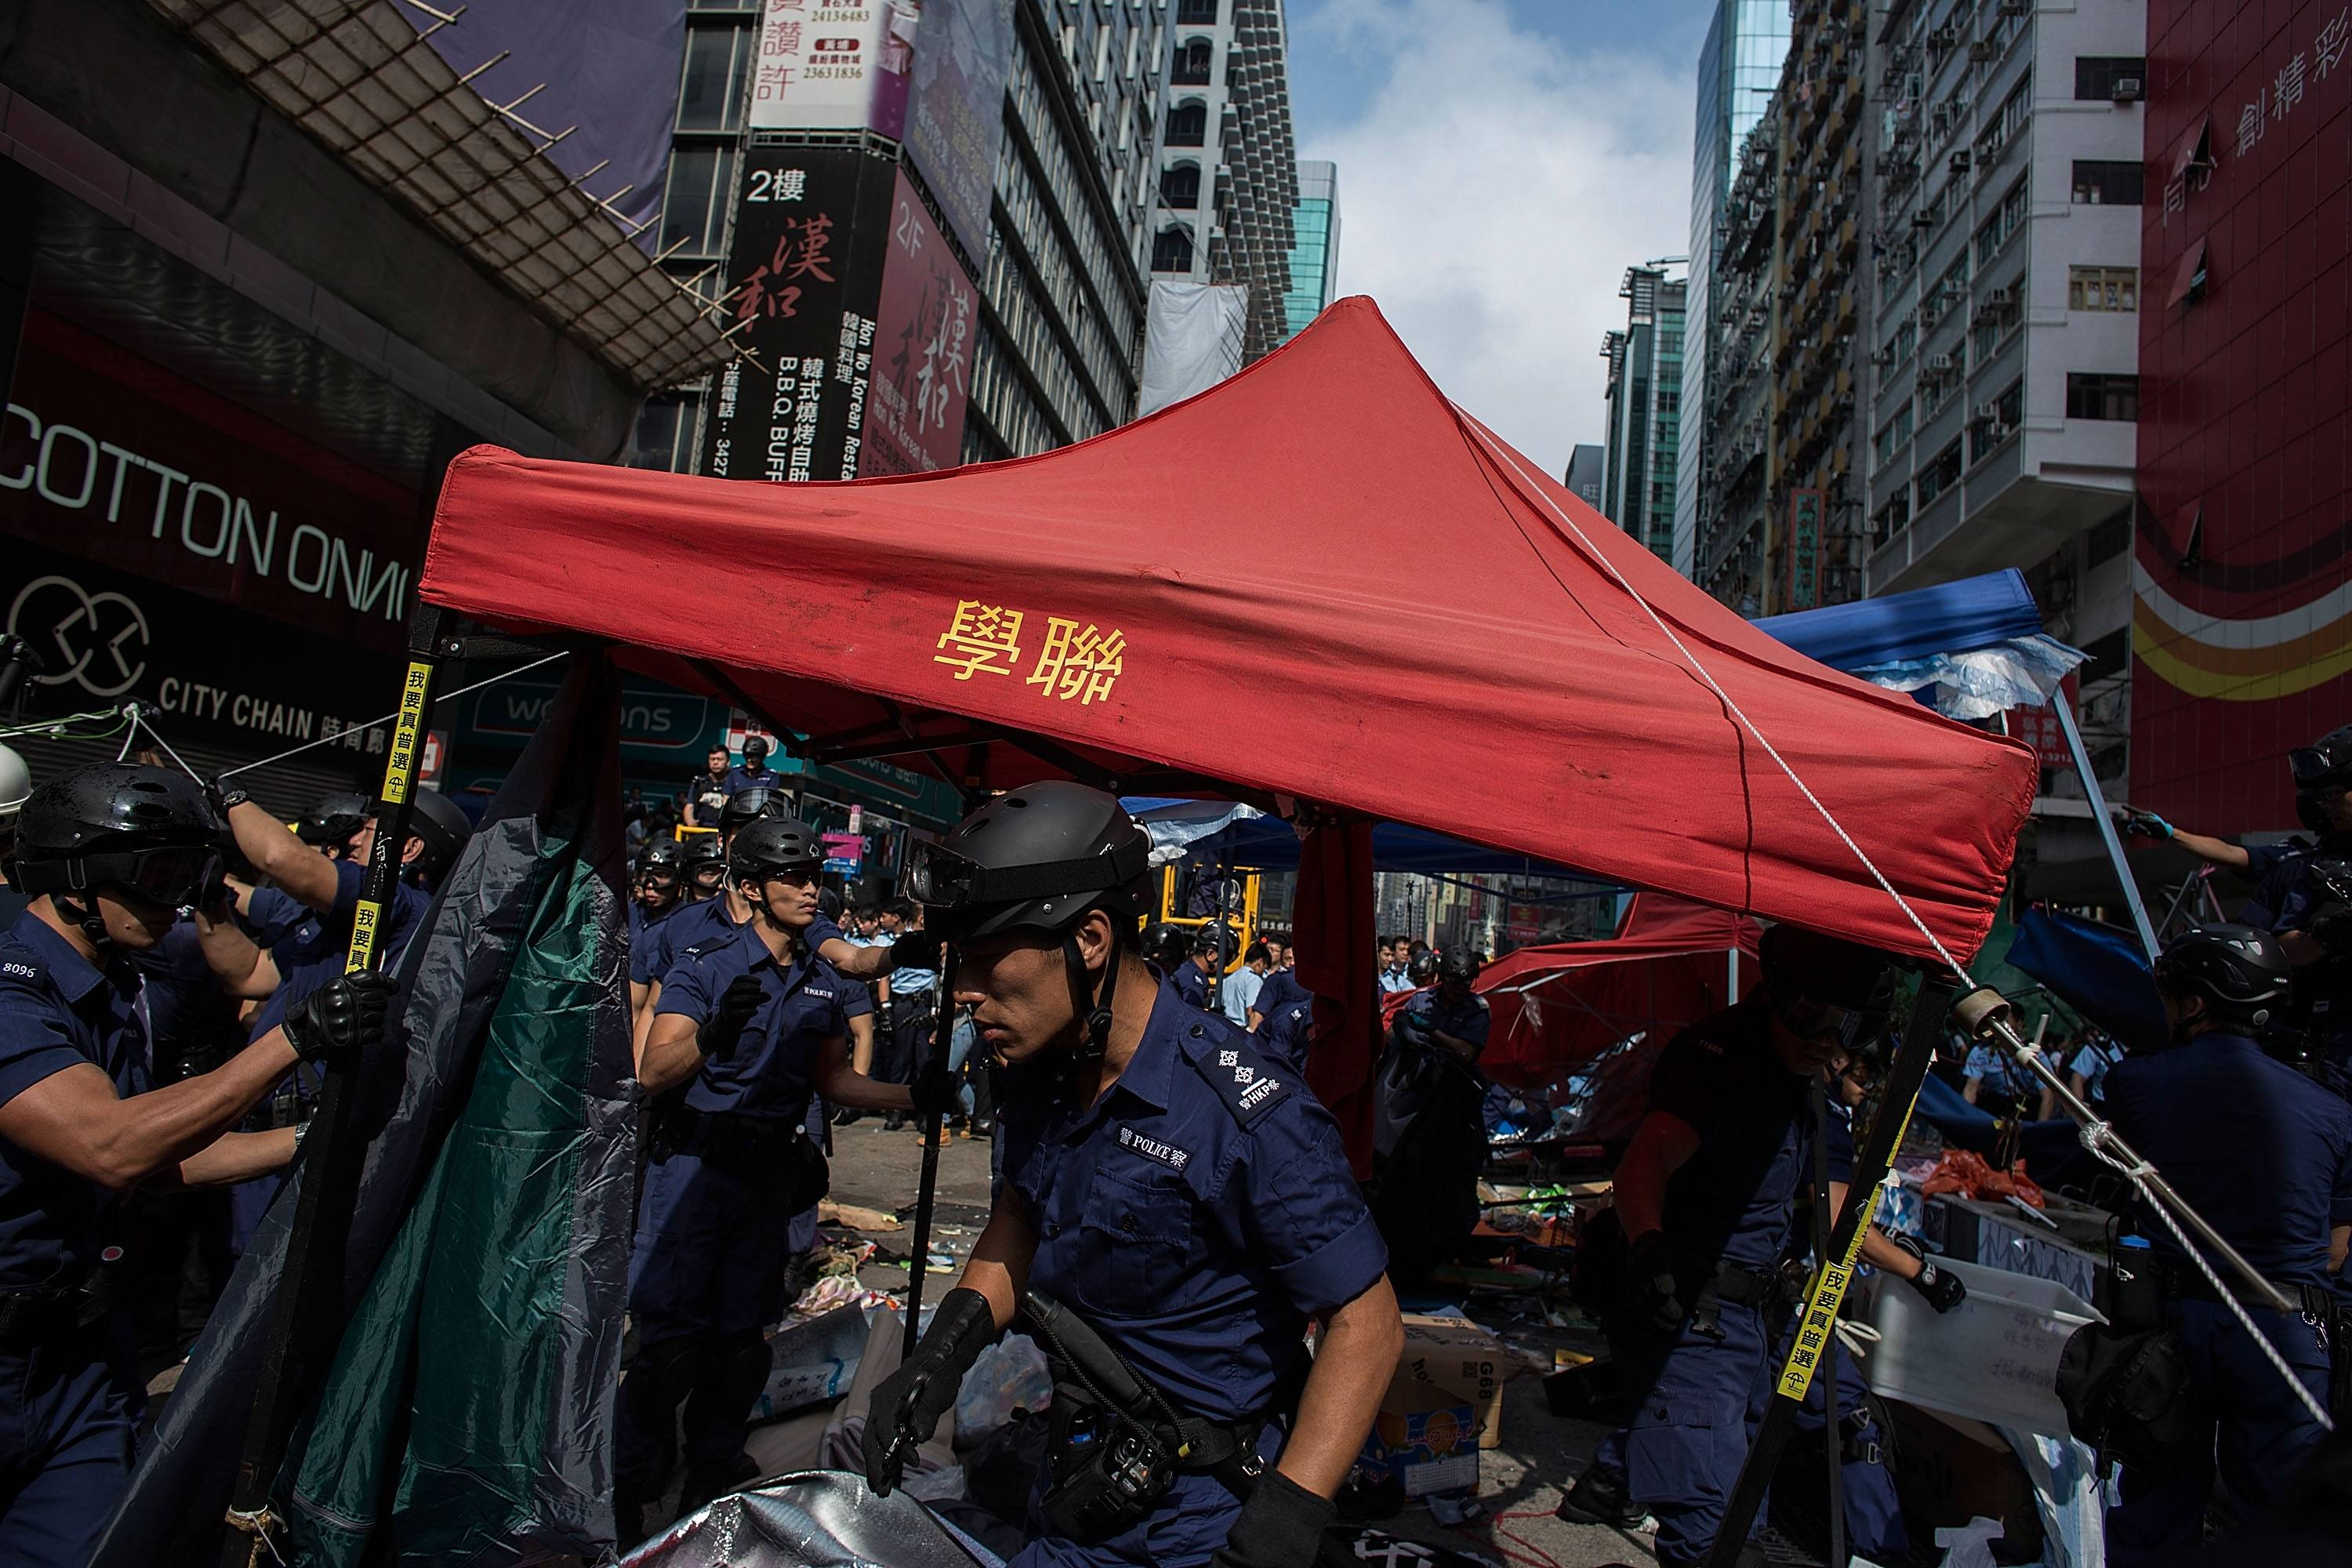 40ef & What Has Happened To Hong Kongu0027s Umbrella Revolution After 2 Months?